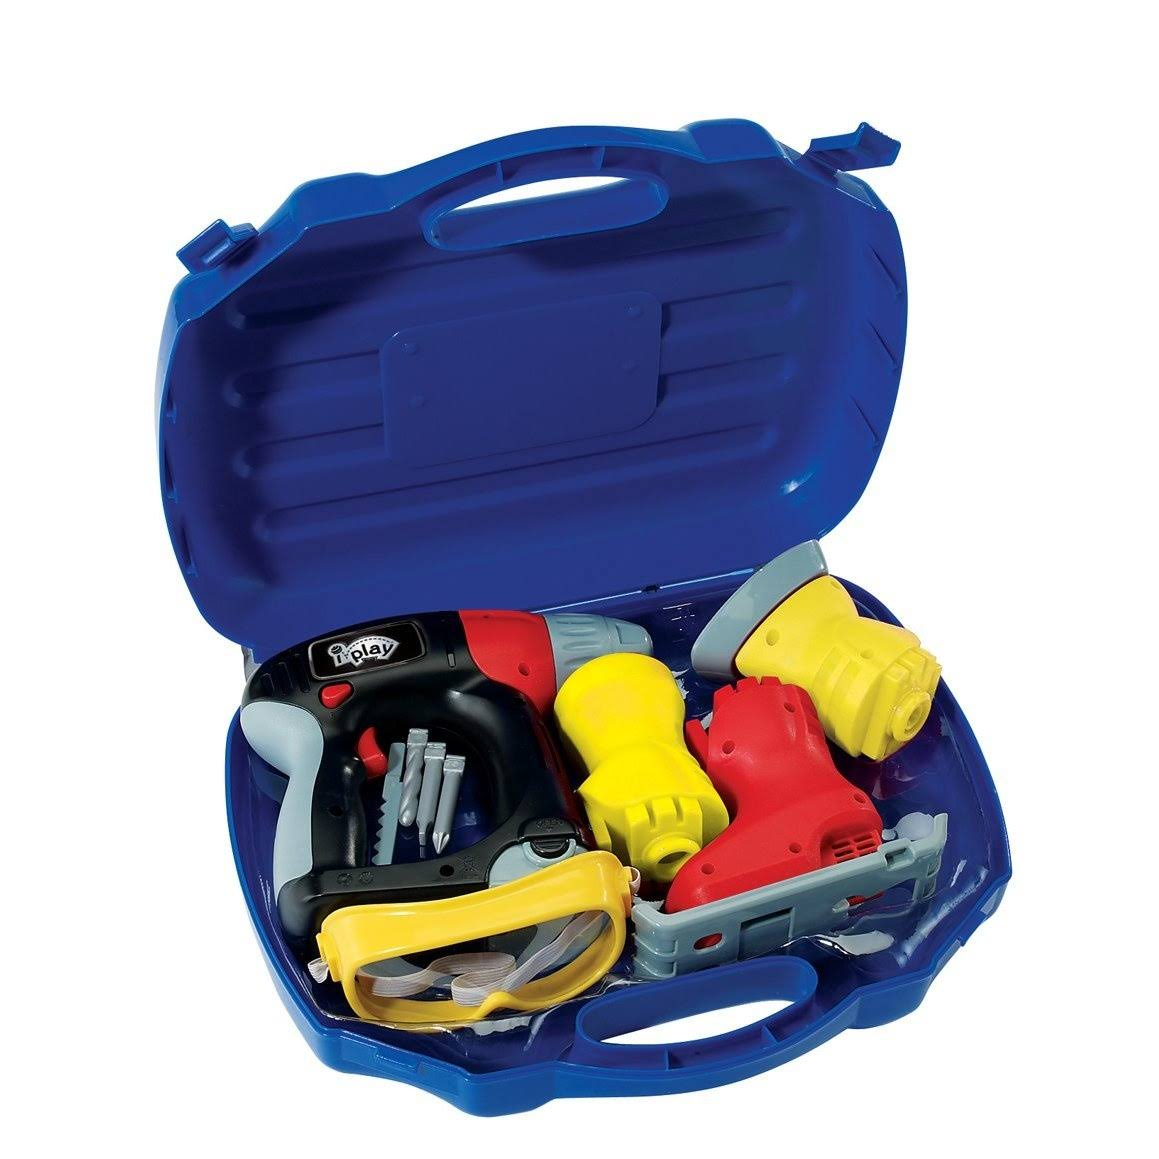 Iplay Total Tool Case